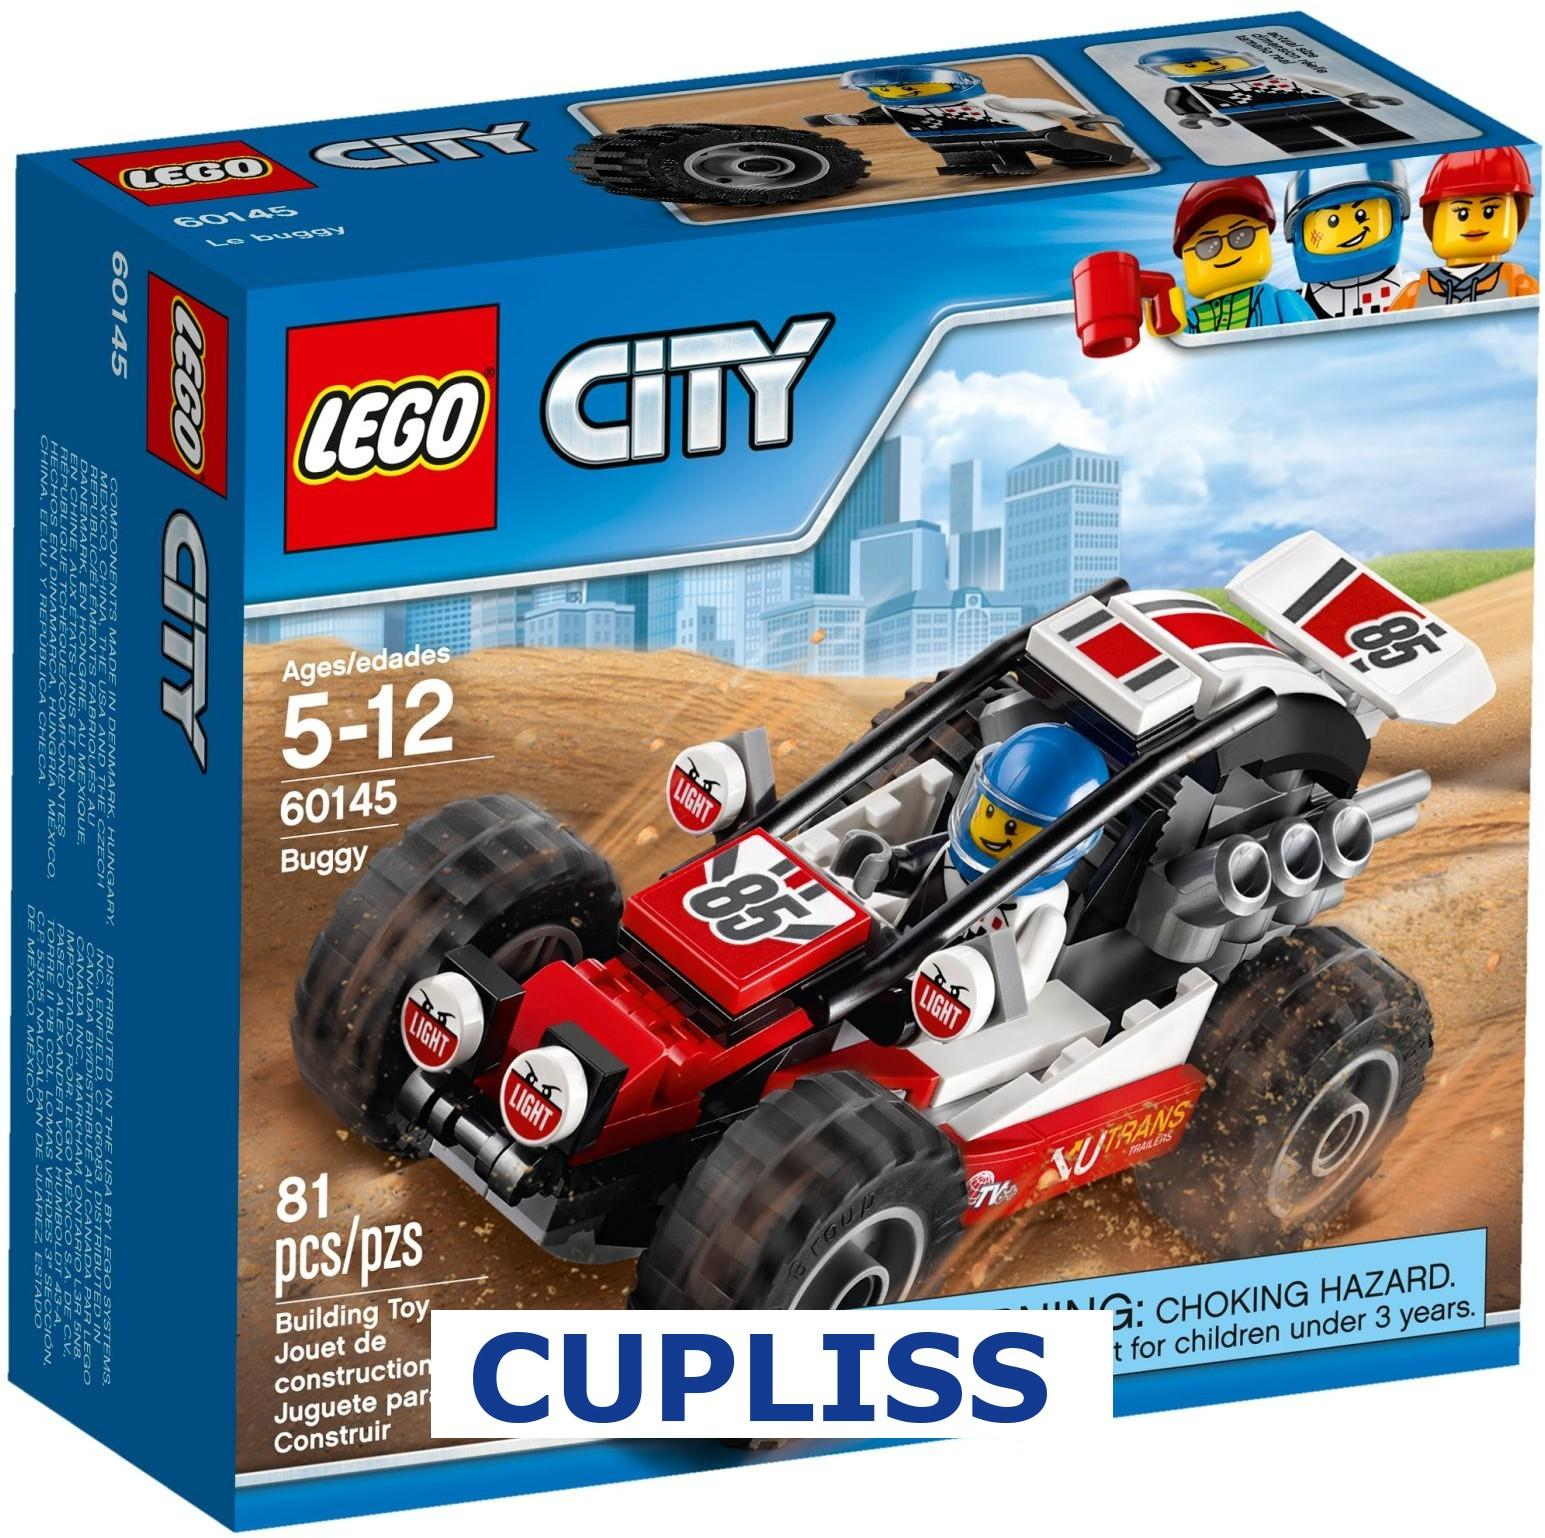 Lego City 60145 Buggy Car